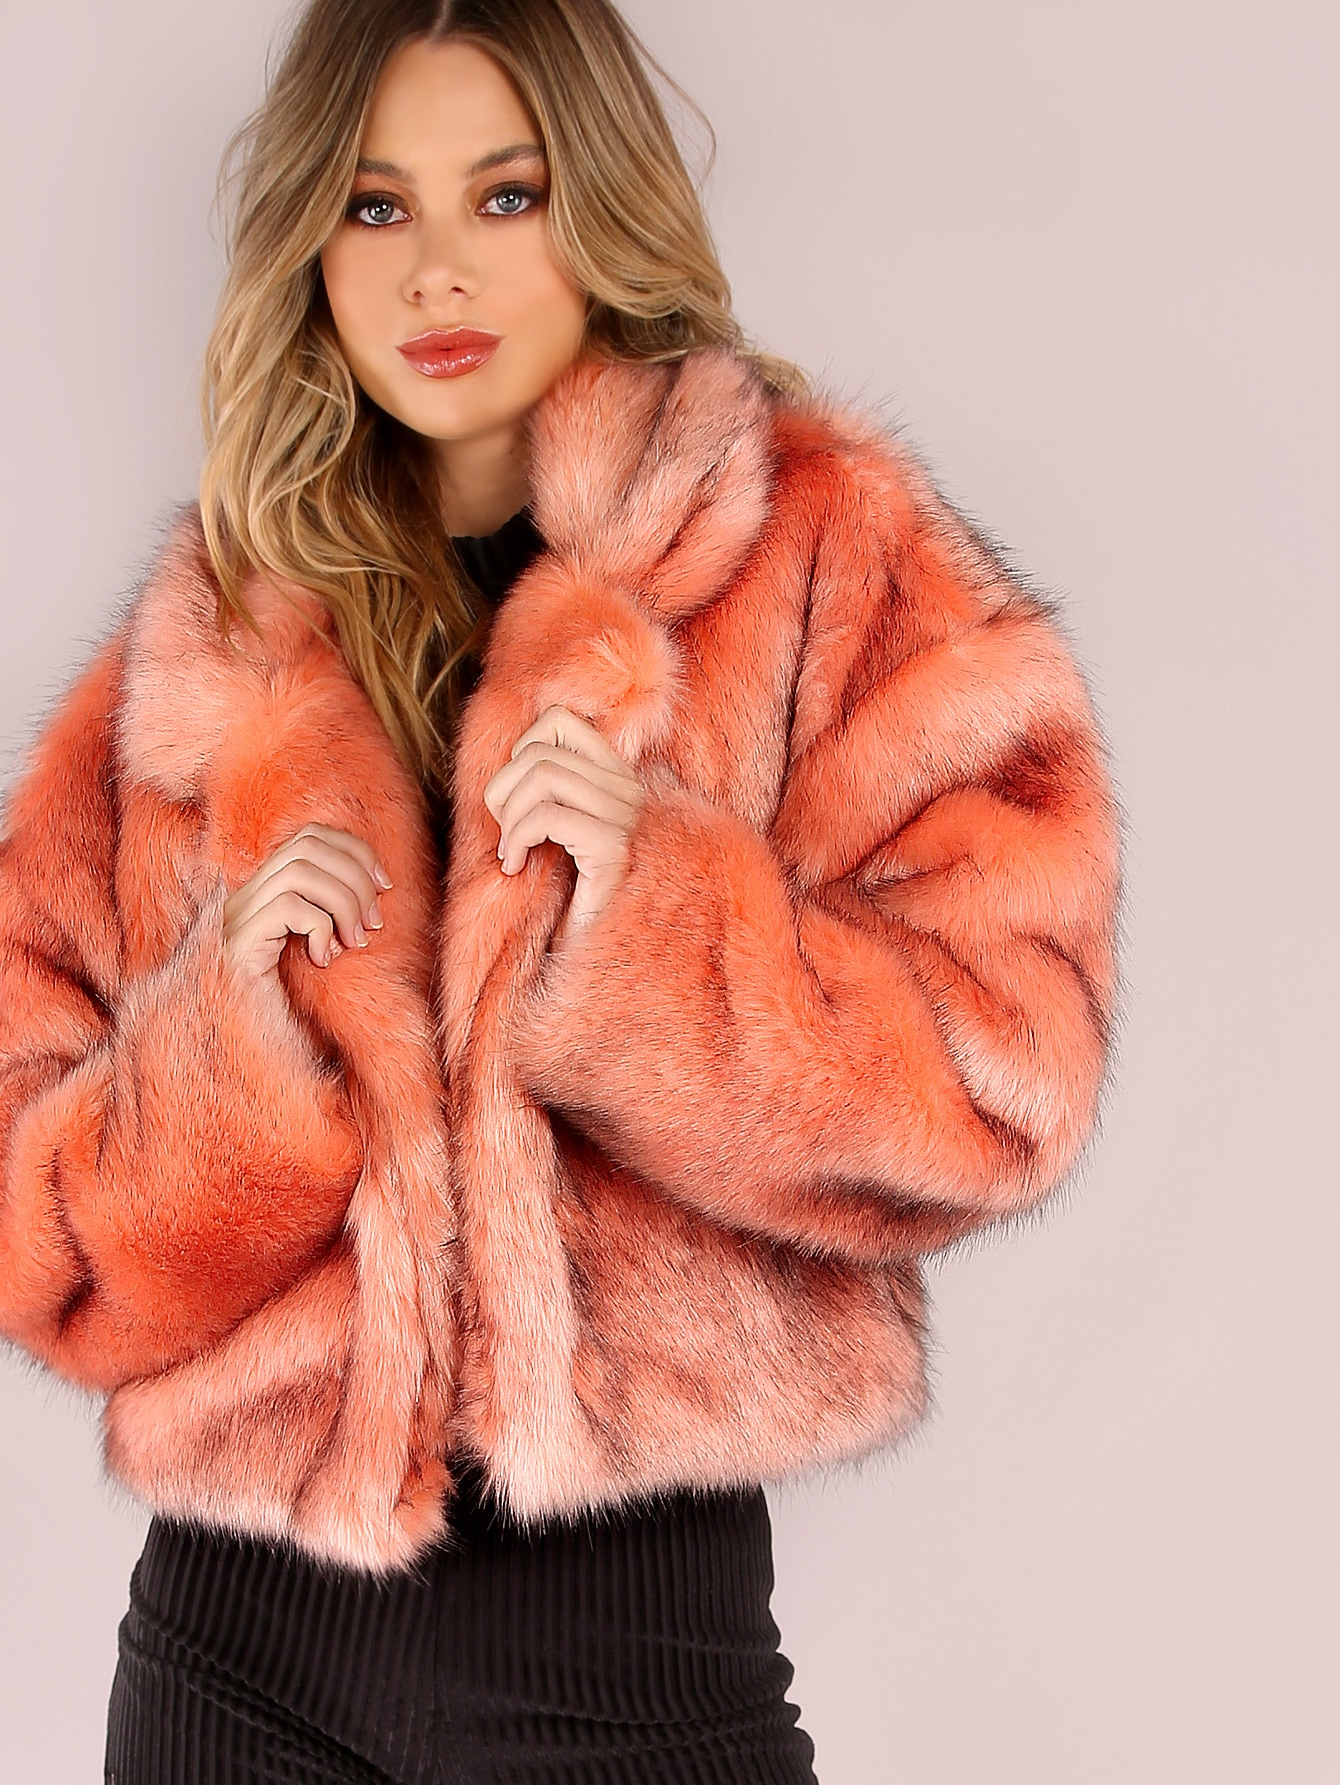 Coats Pink Polyester Stand Collar Cute Short Winter Plain Fabric has no stretch Long Sleeve Outerwear.